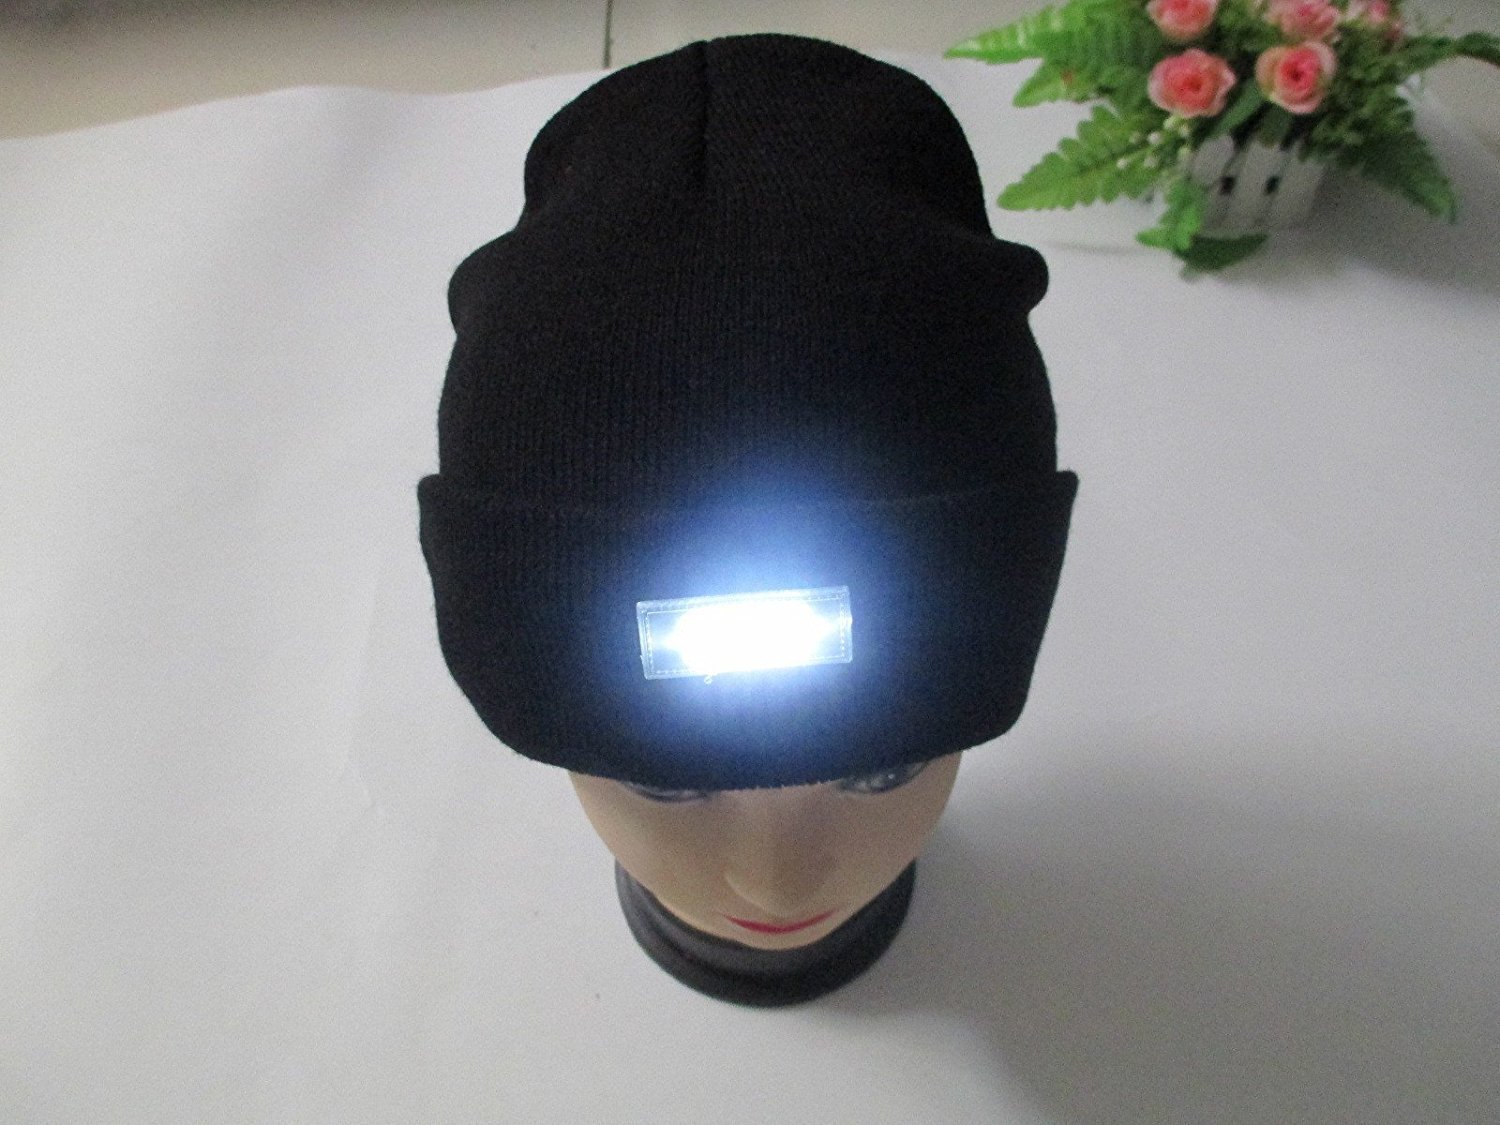 151476288d1 Ohuhu 5-LED Lighted Cap Winter Warm Beanie Angling Hunting Camping Running  Hat